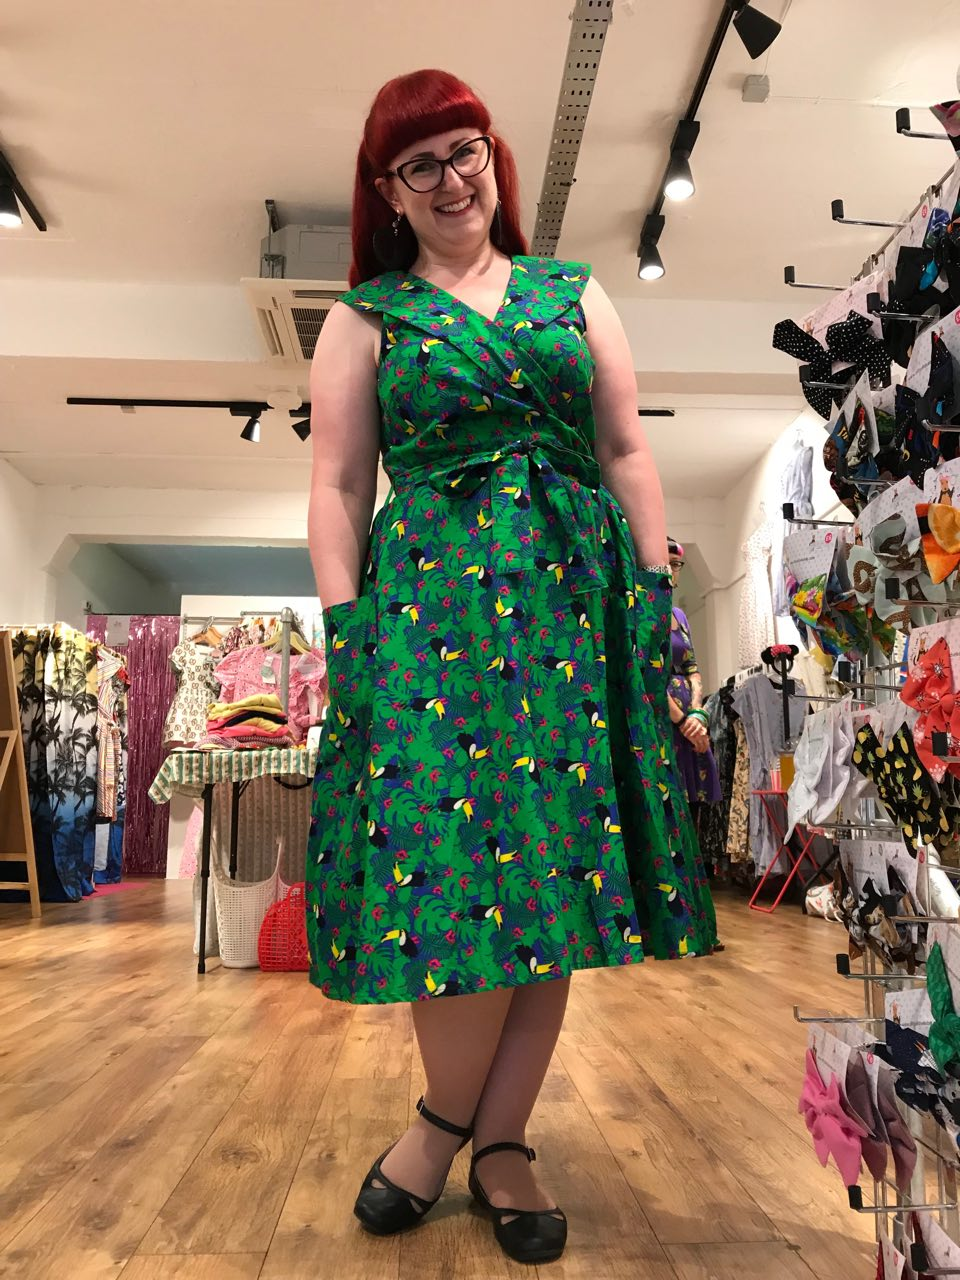 Lori wearing a toucan print dress from Love ur Look